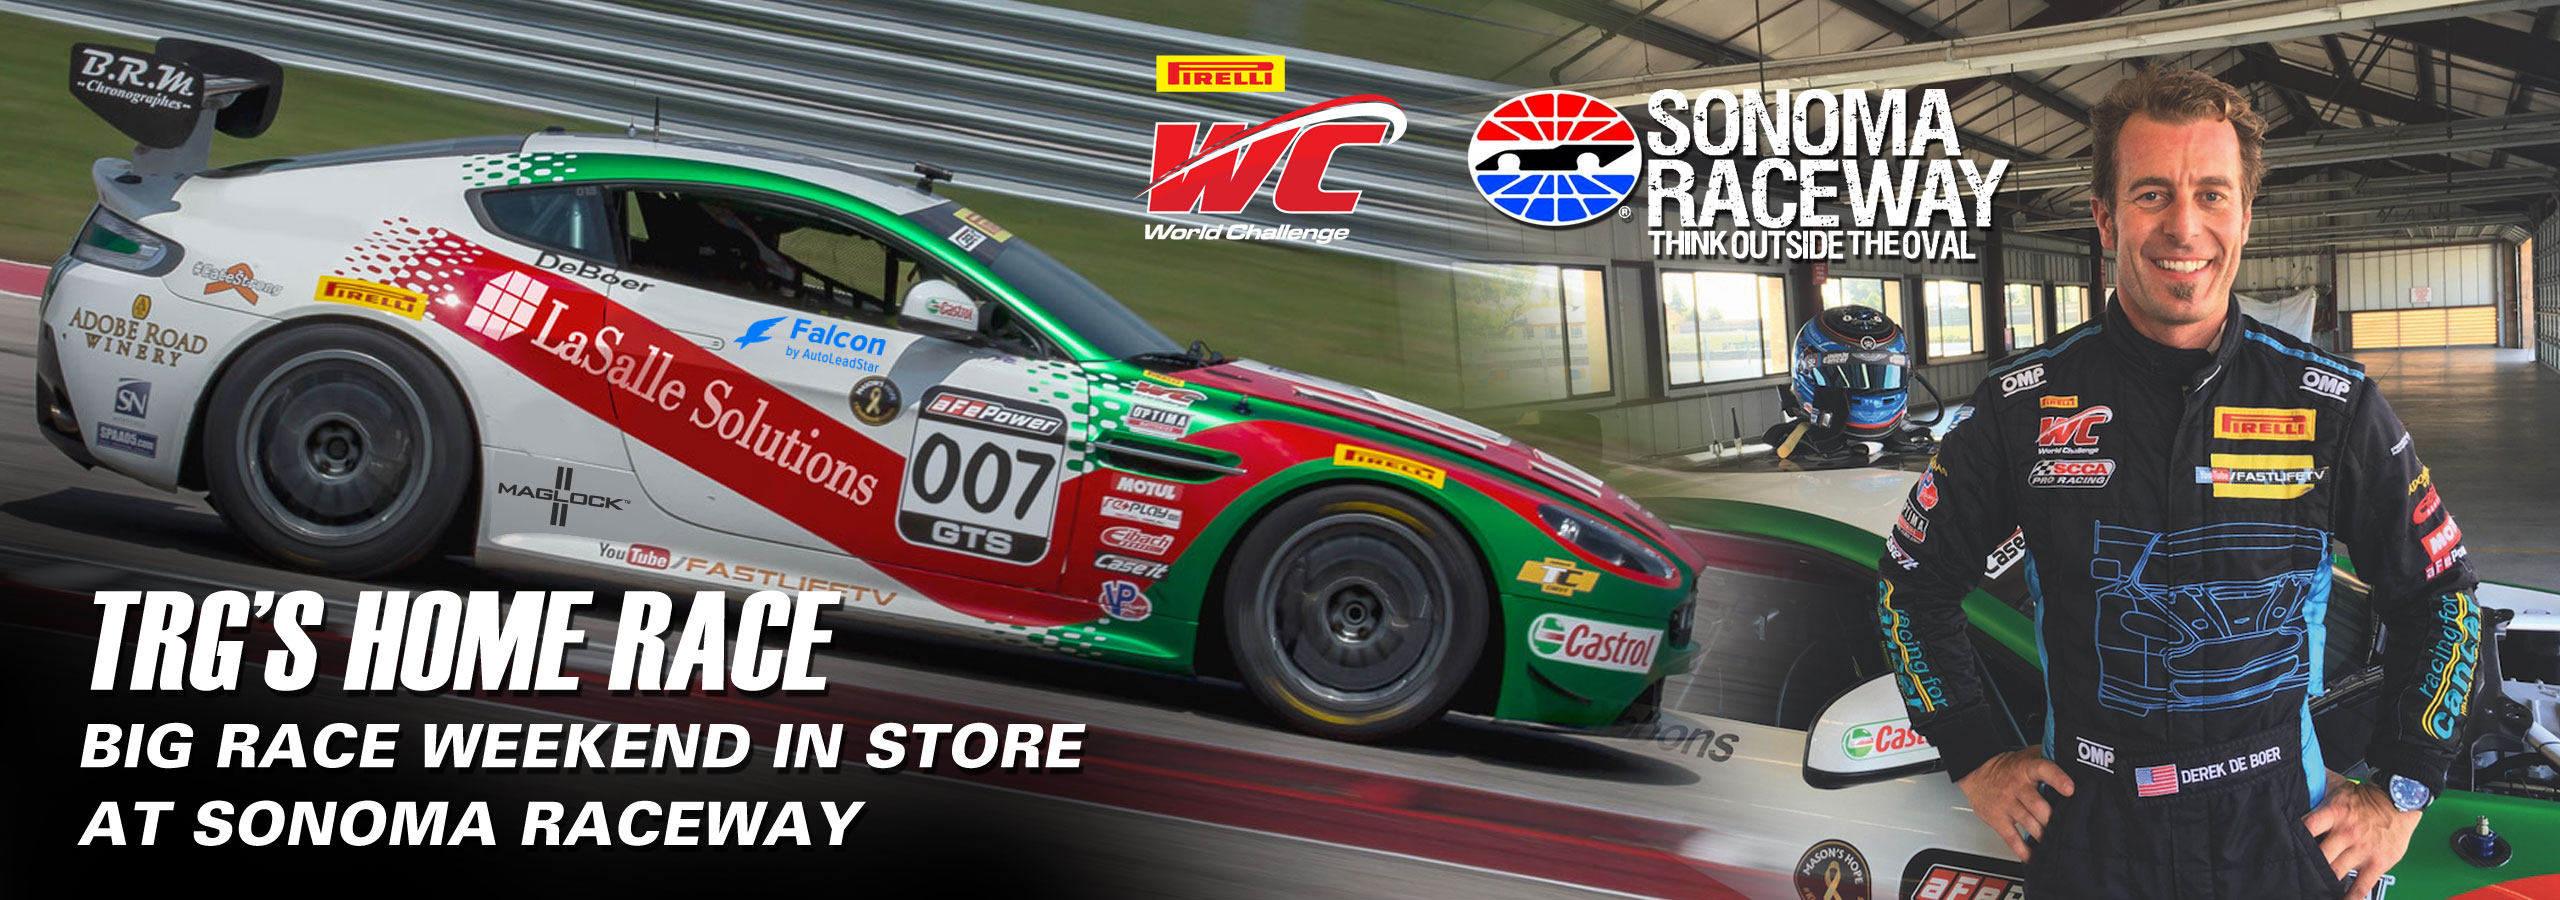 TRG's Home Race: Big Race Weekend in Store at Sonoma Raceway